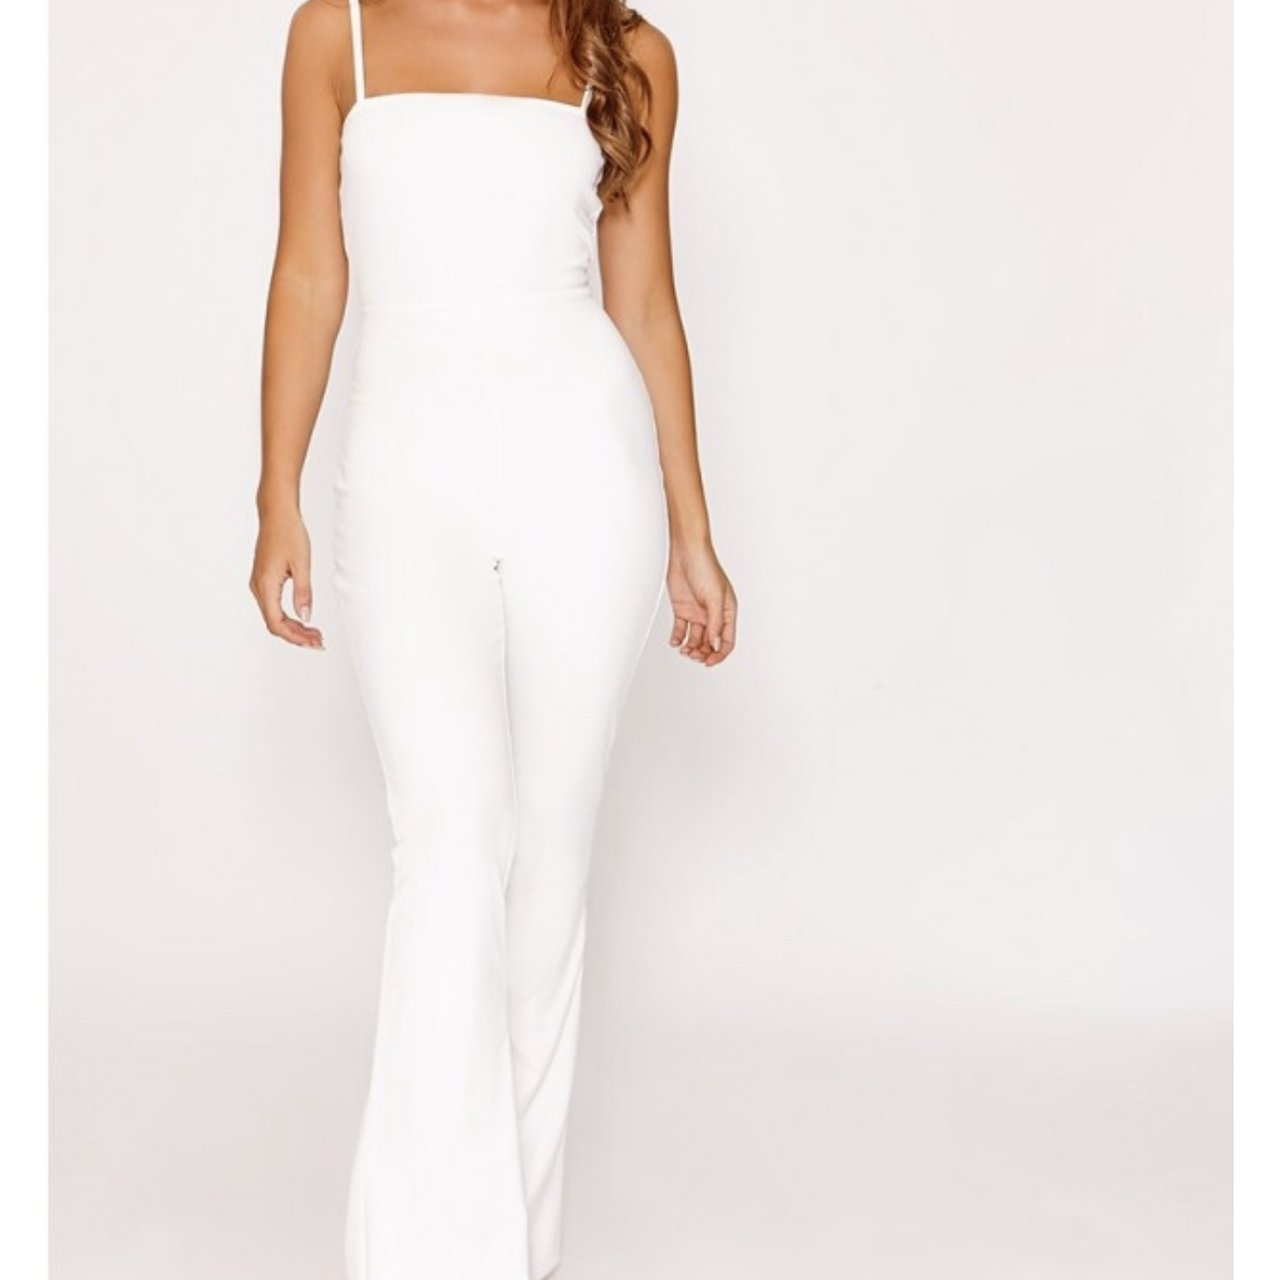 a9335ca0afe1 Stunning white jumpsuit. Brand new with tags. Size 10 £20 - Depop